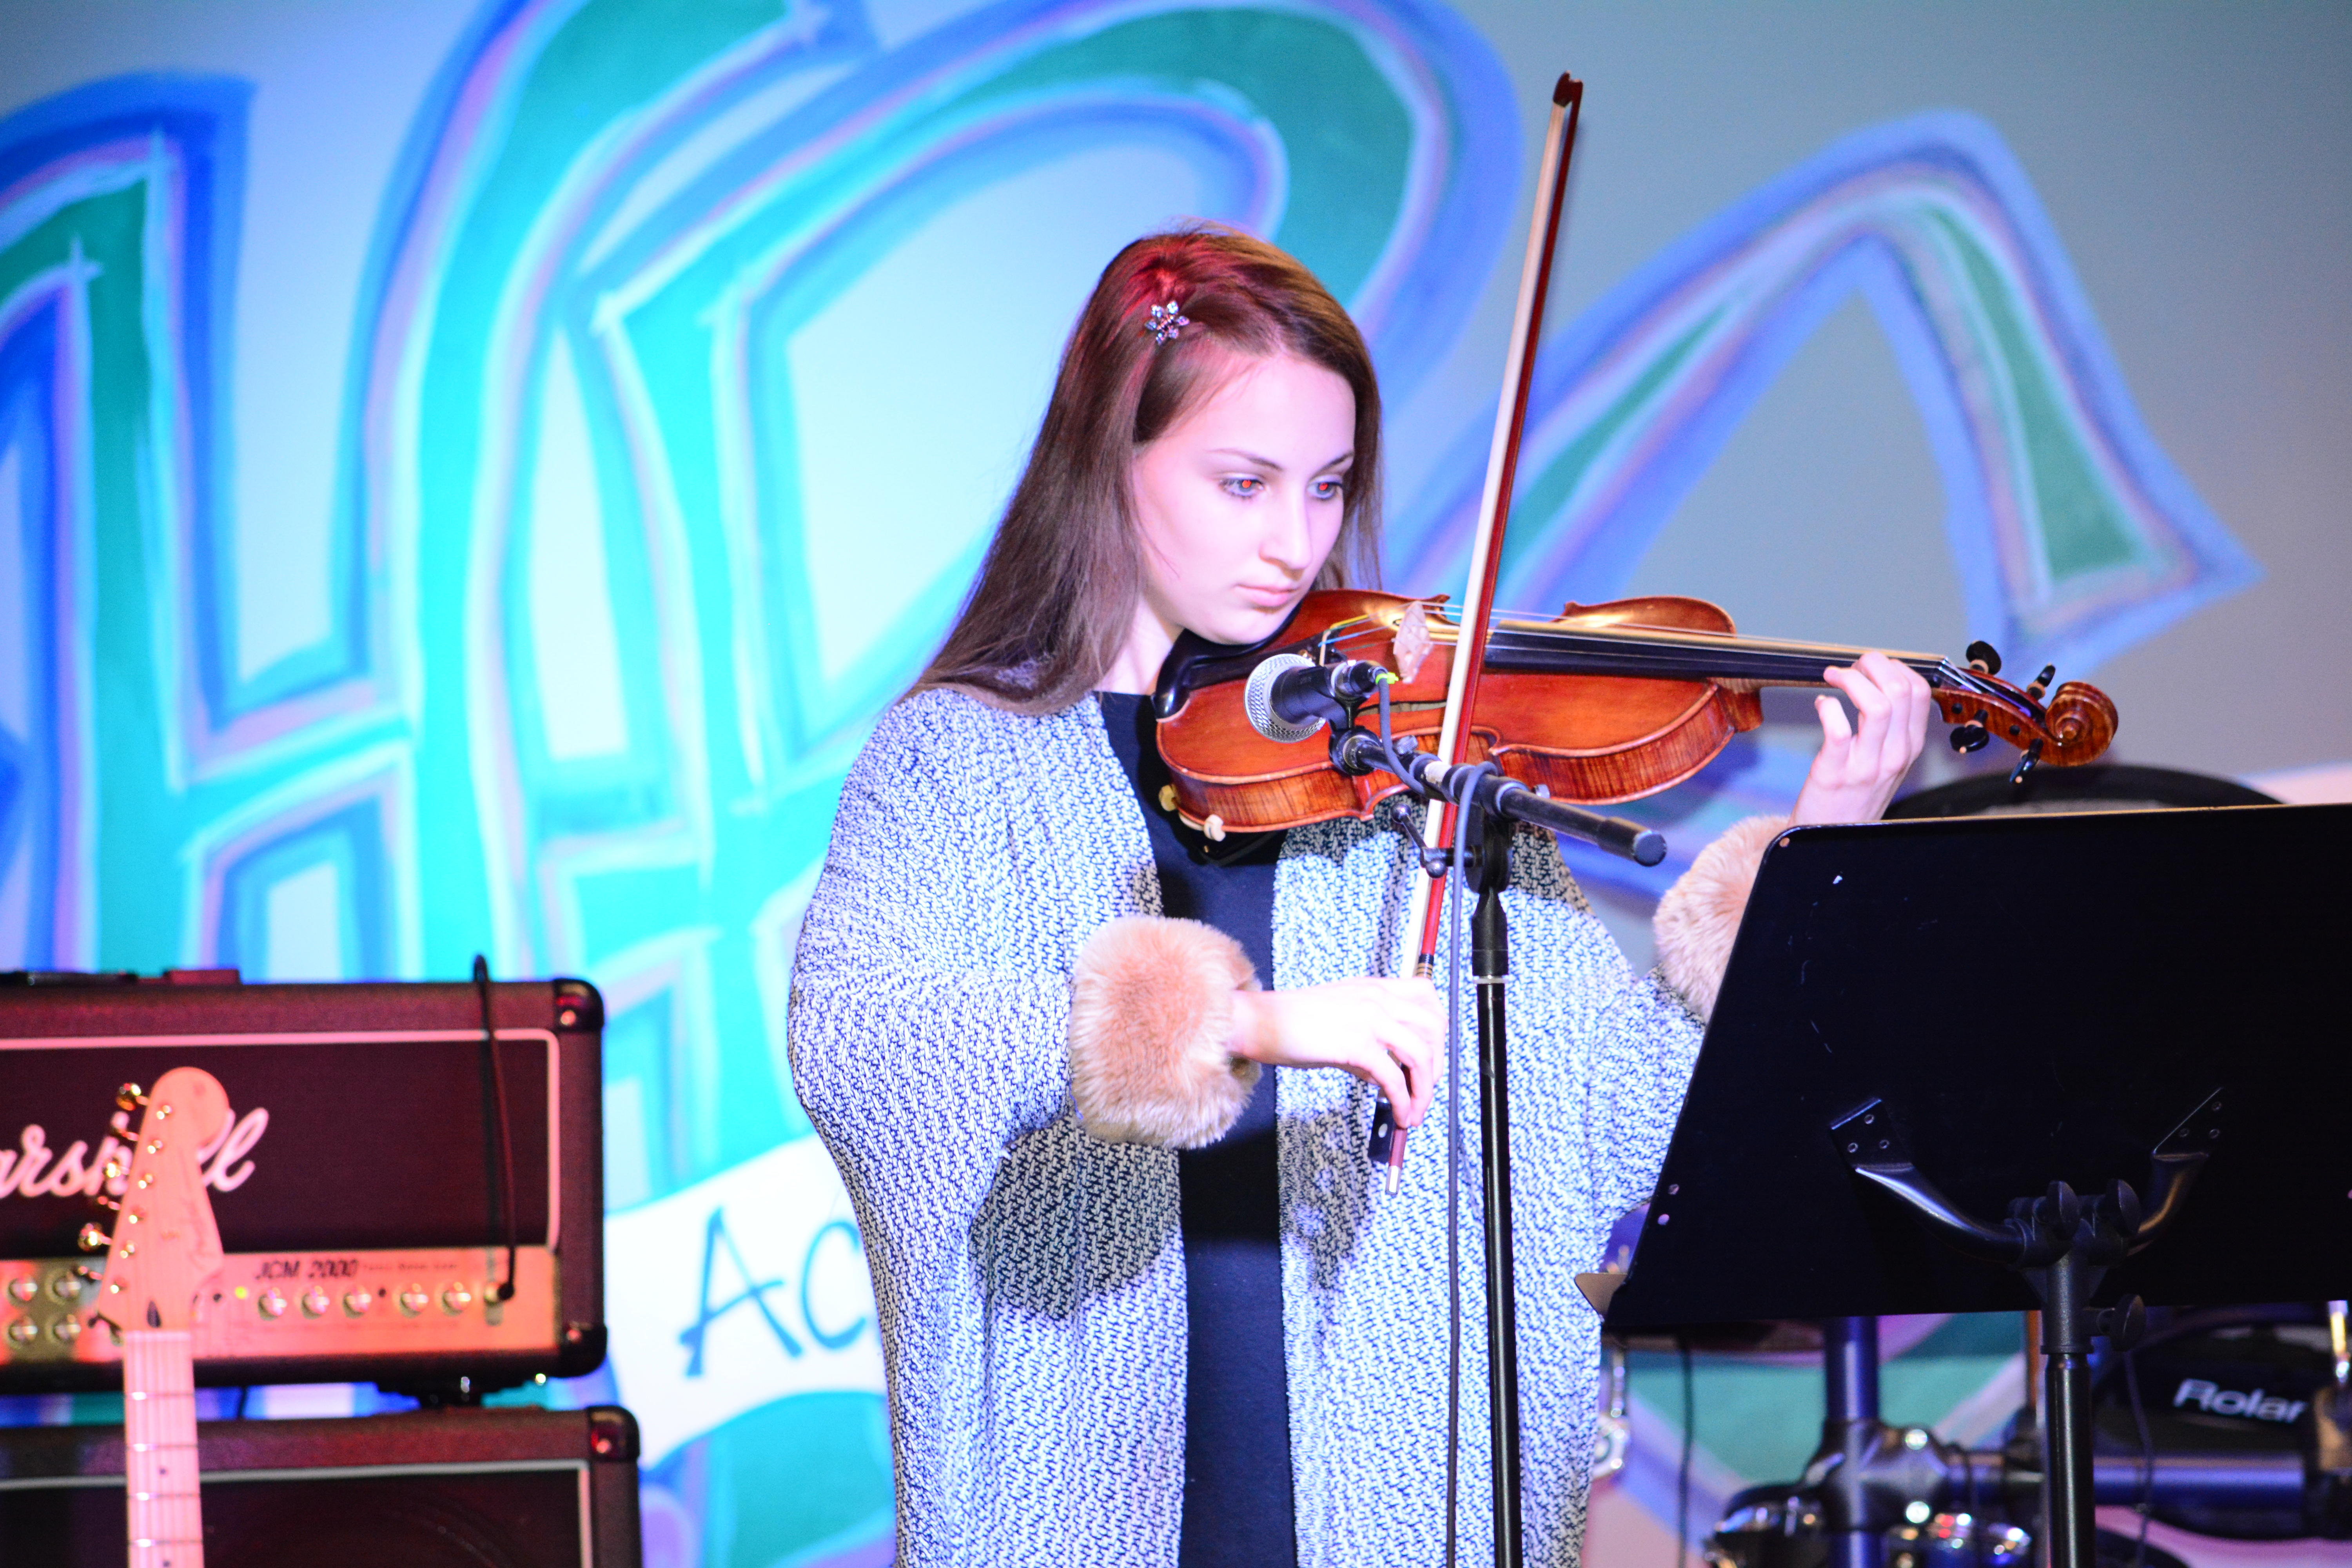 A student playing the violin at an HPS music concert